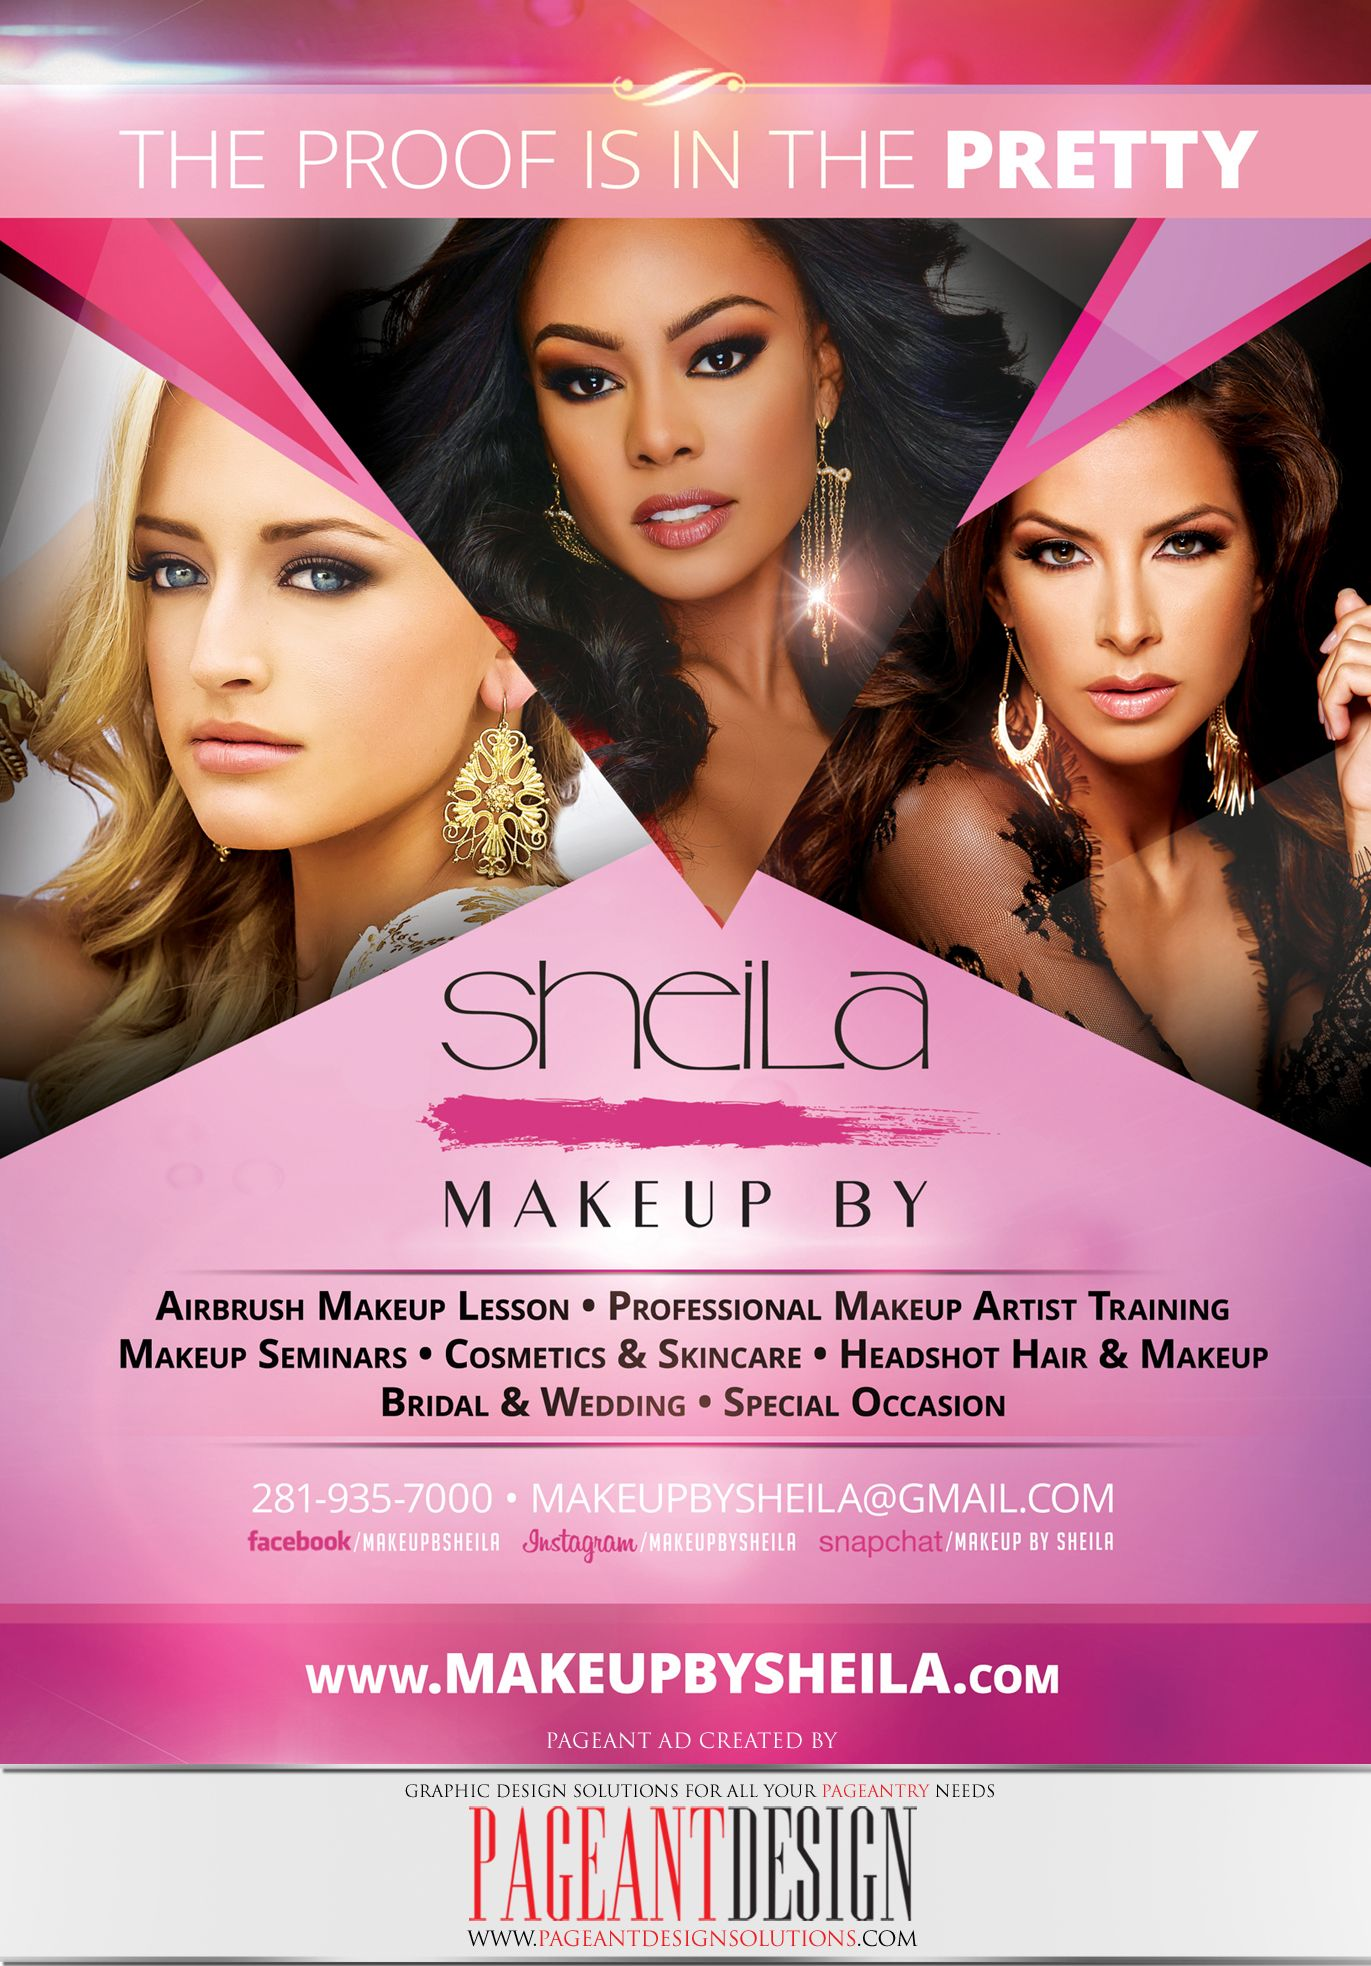 AWESOMEpageantAD and promo flyer designed for MAKEUP BY